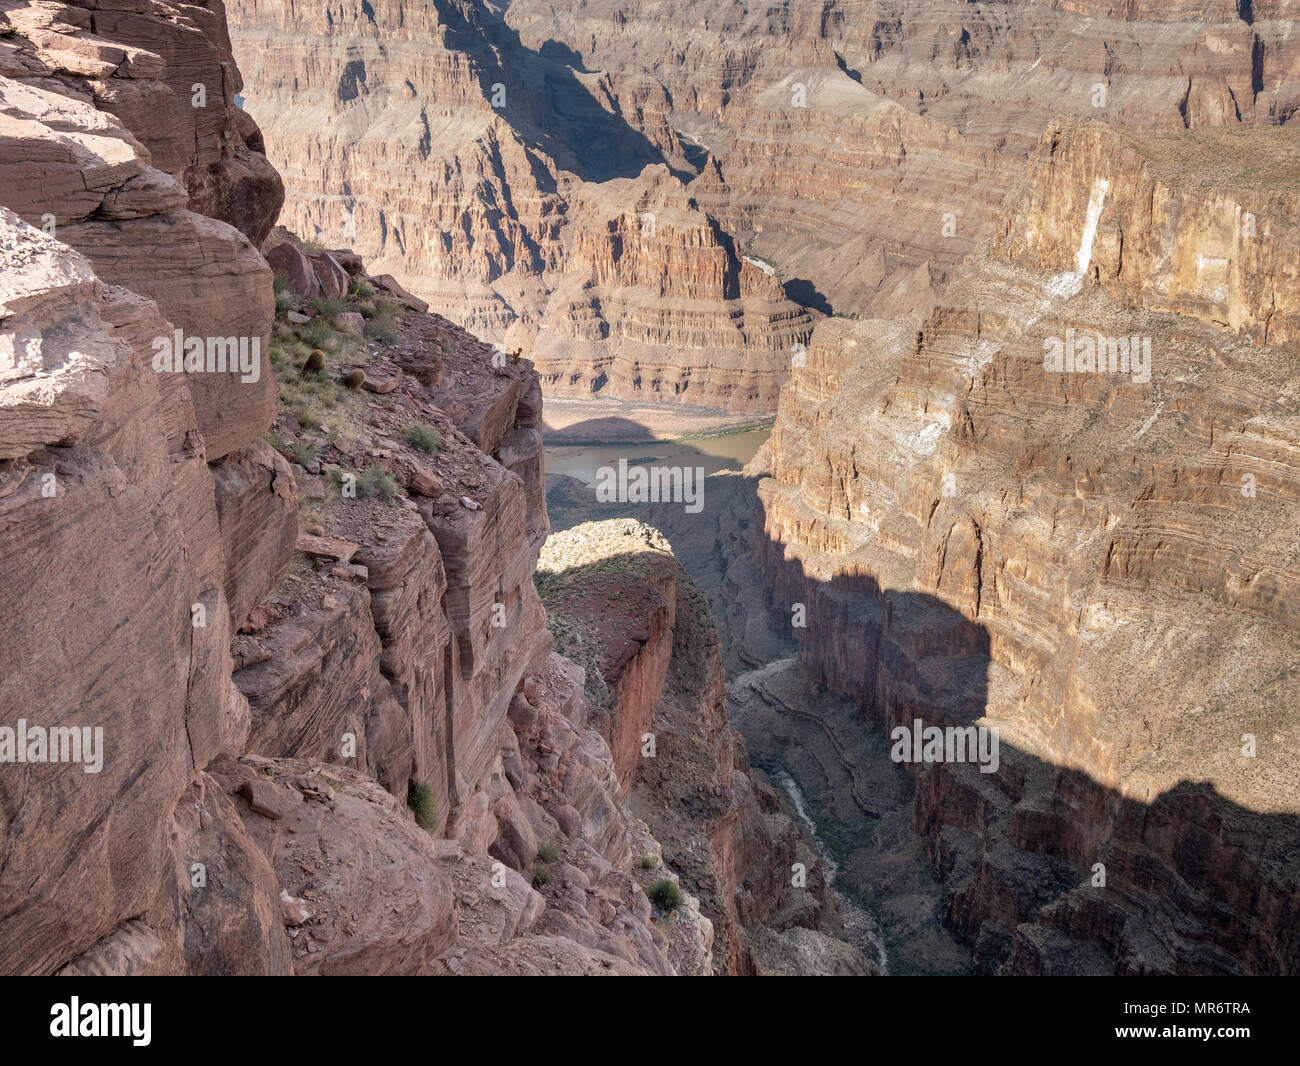 View of the inside of the Grand Canyon From the Edge - Stock Image